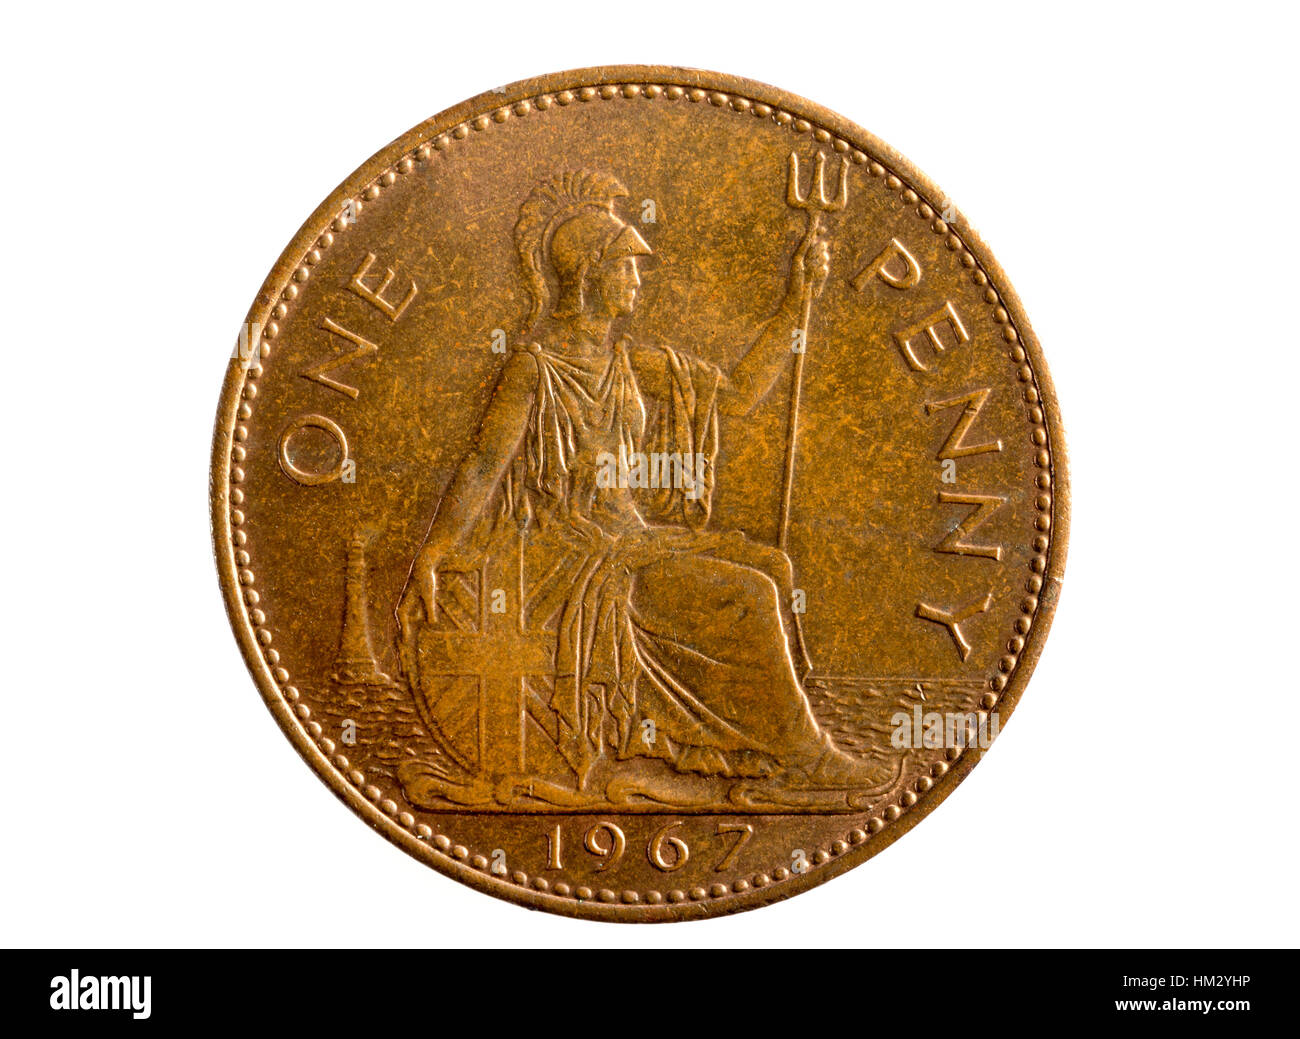 A One Penny old British imperial coin - Stock Image